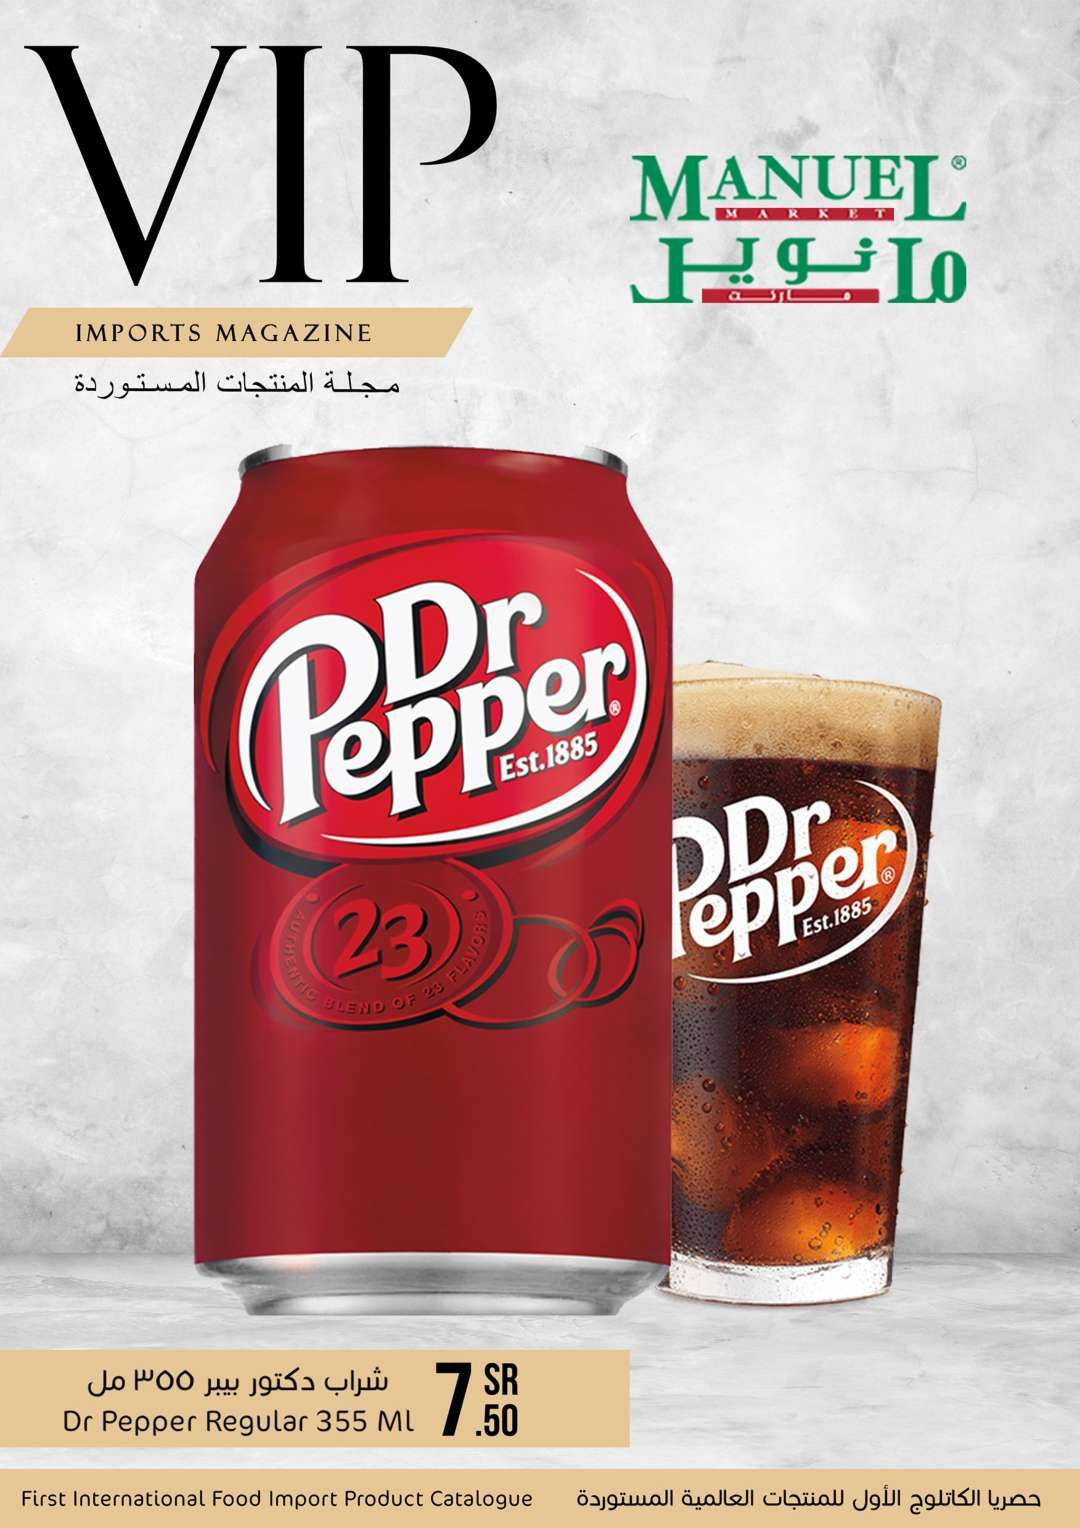 Pin By Soouq Sudia On عروض مانويل Stuffed Peppers Dr Pepper International Recipes